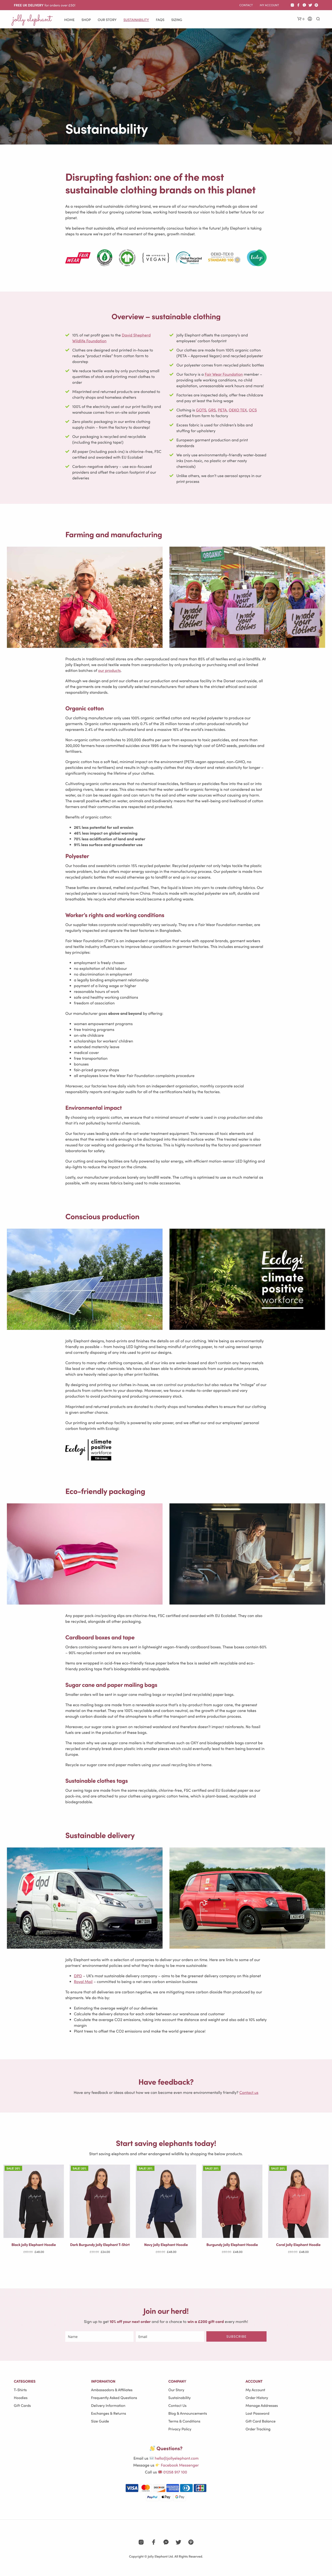 Sustainable brand website sustainability page design